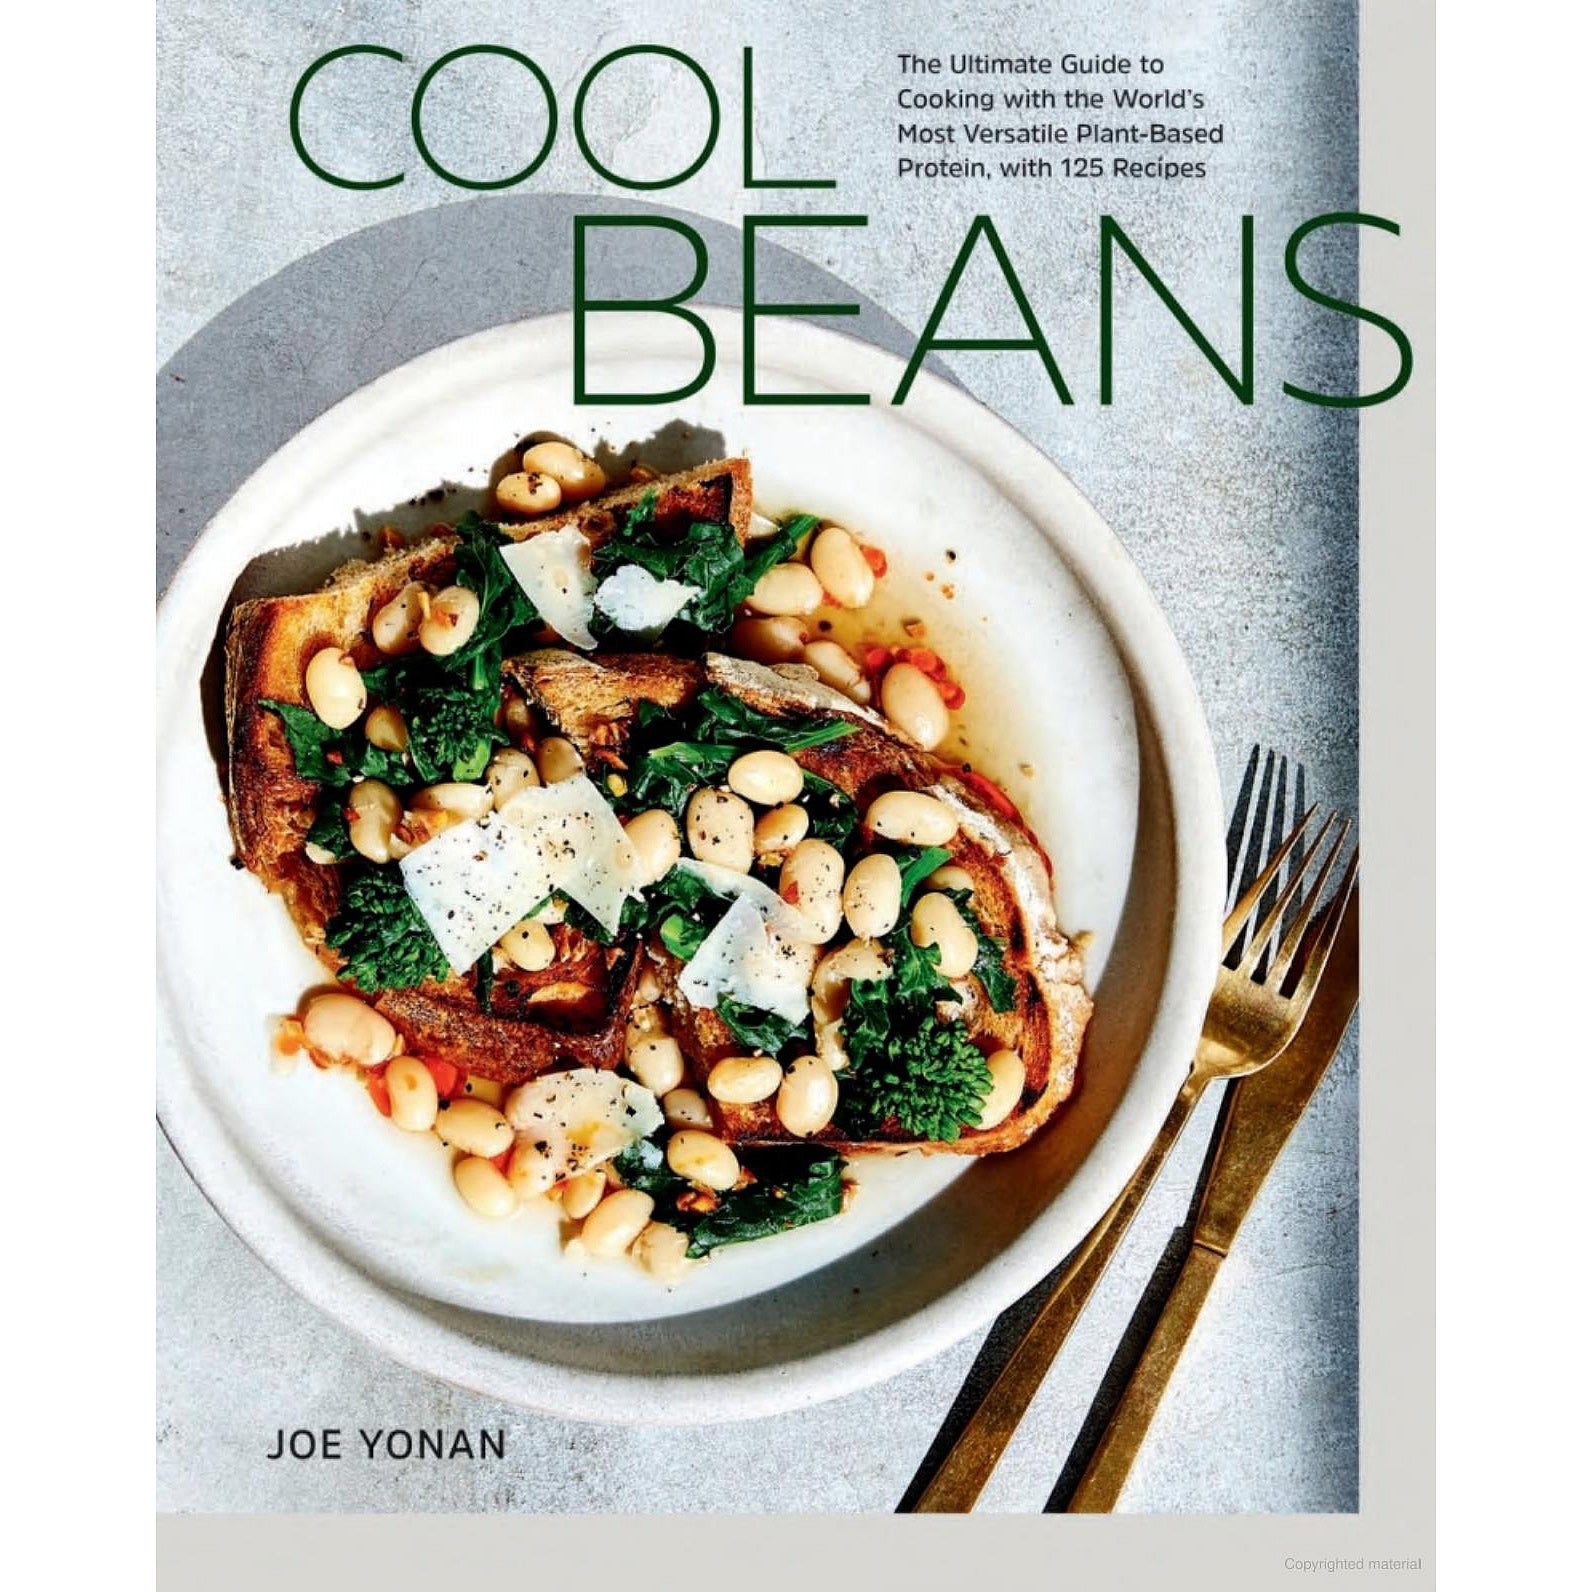 Cool Beans The Ultimate Guide to Cooking with the World